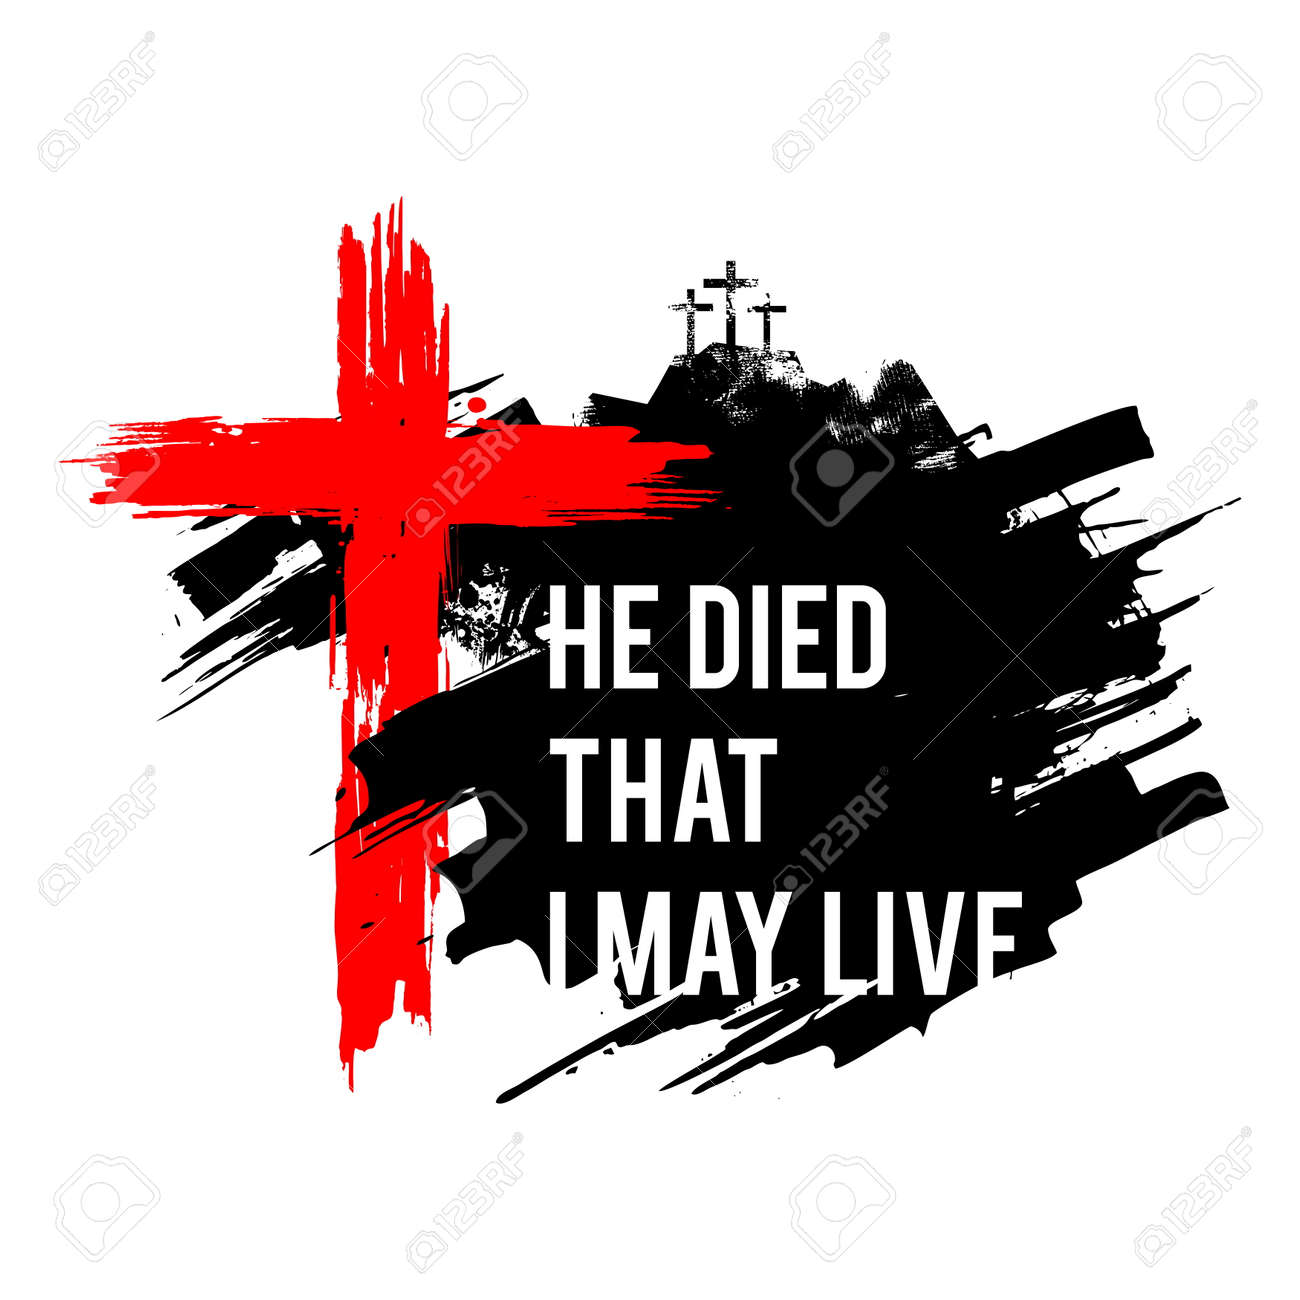 Happy easter illustration. Jesus died that I may live. - 117557015